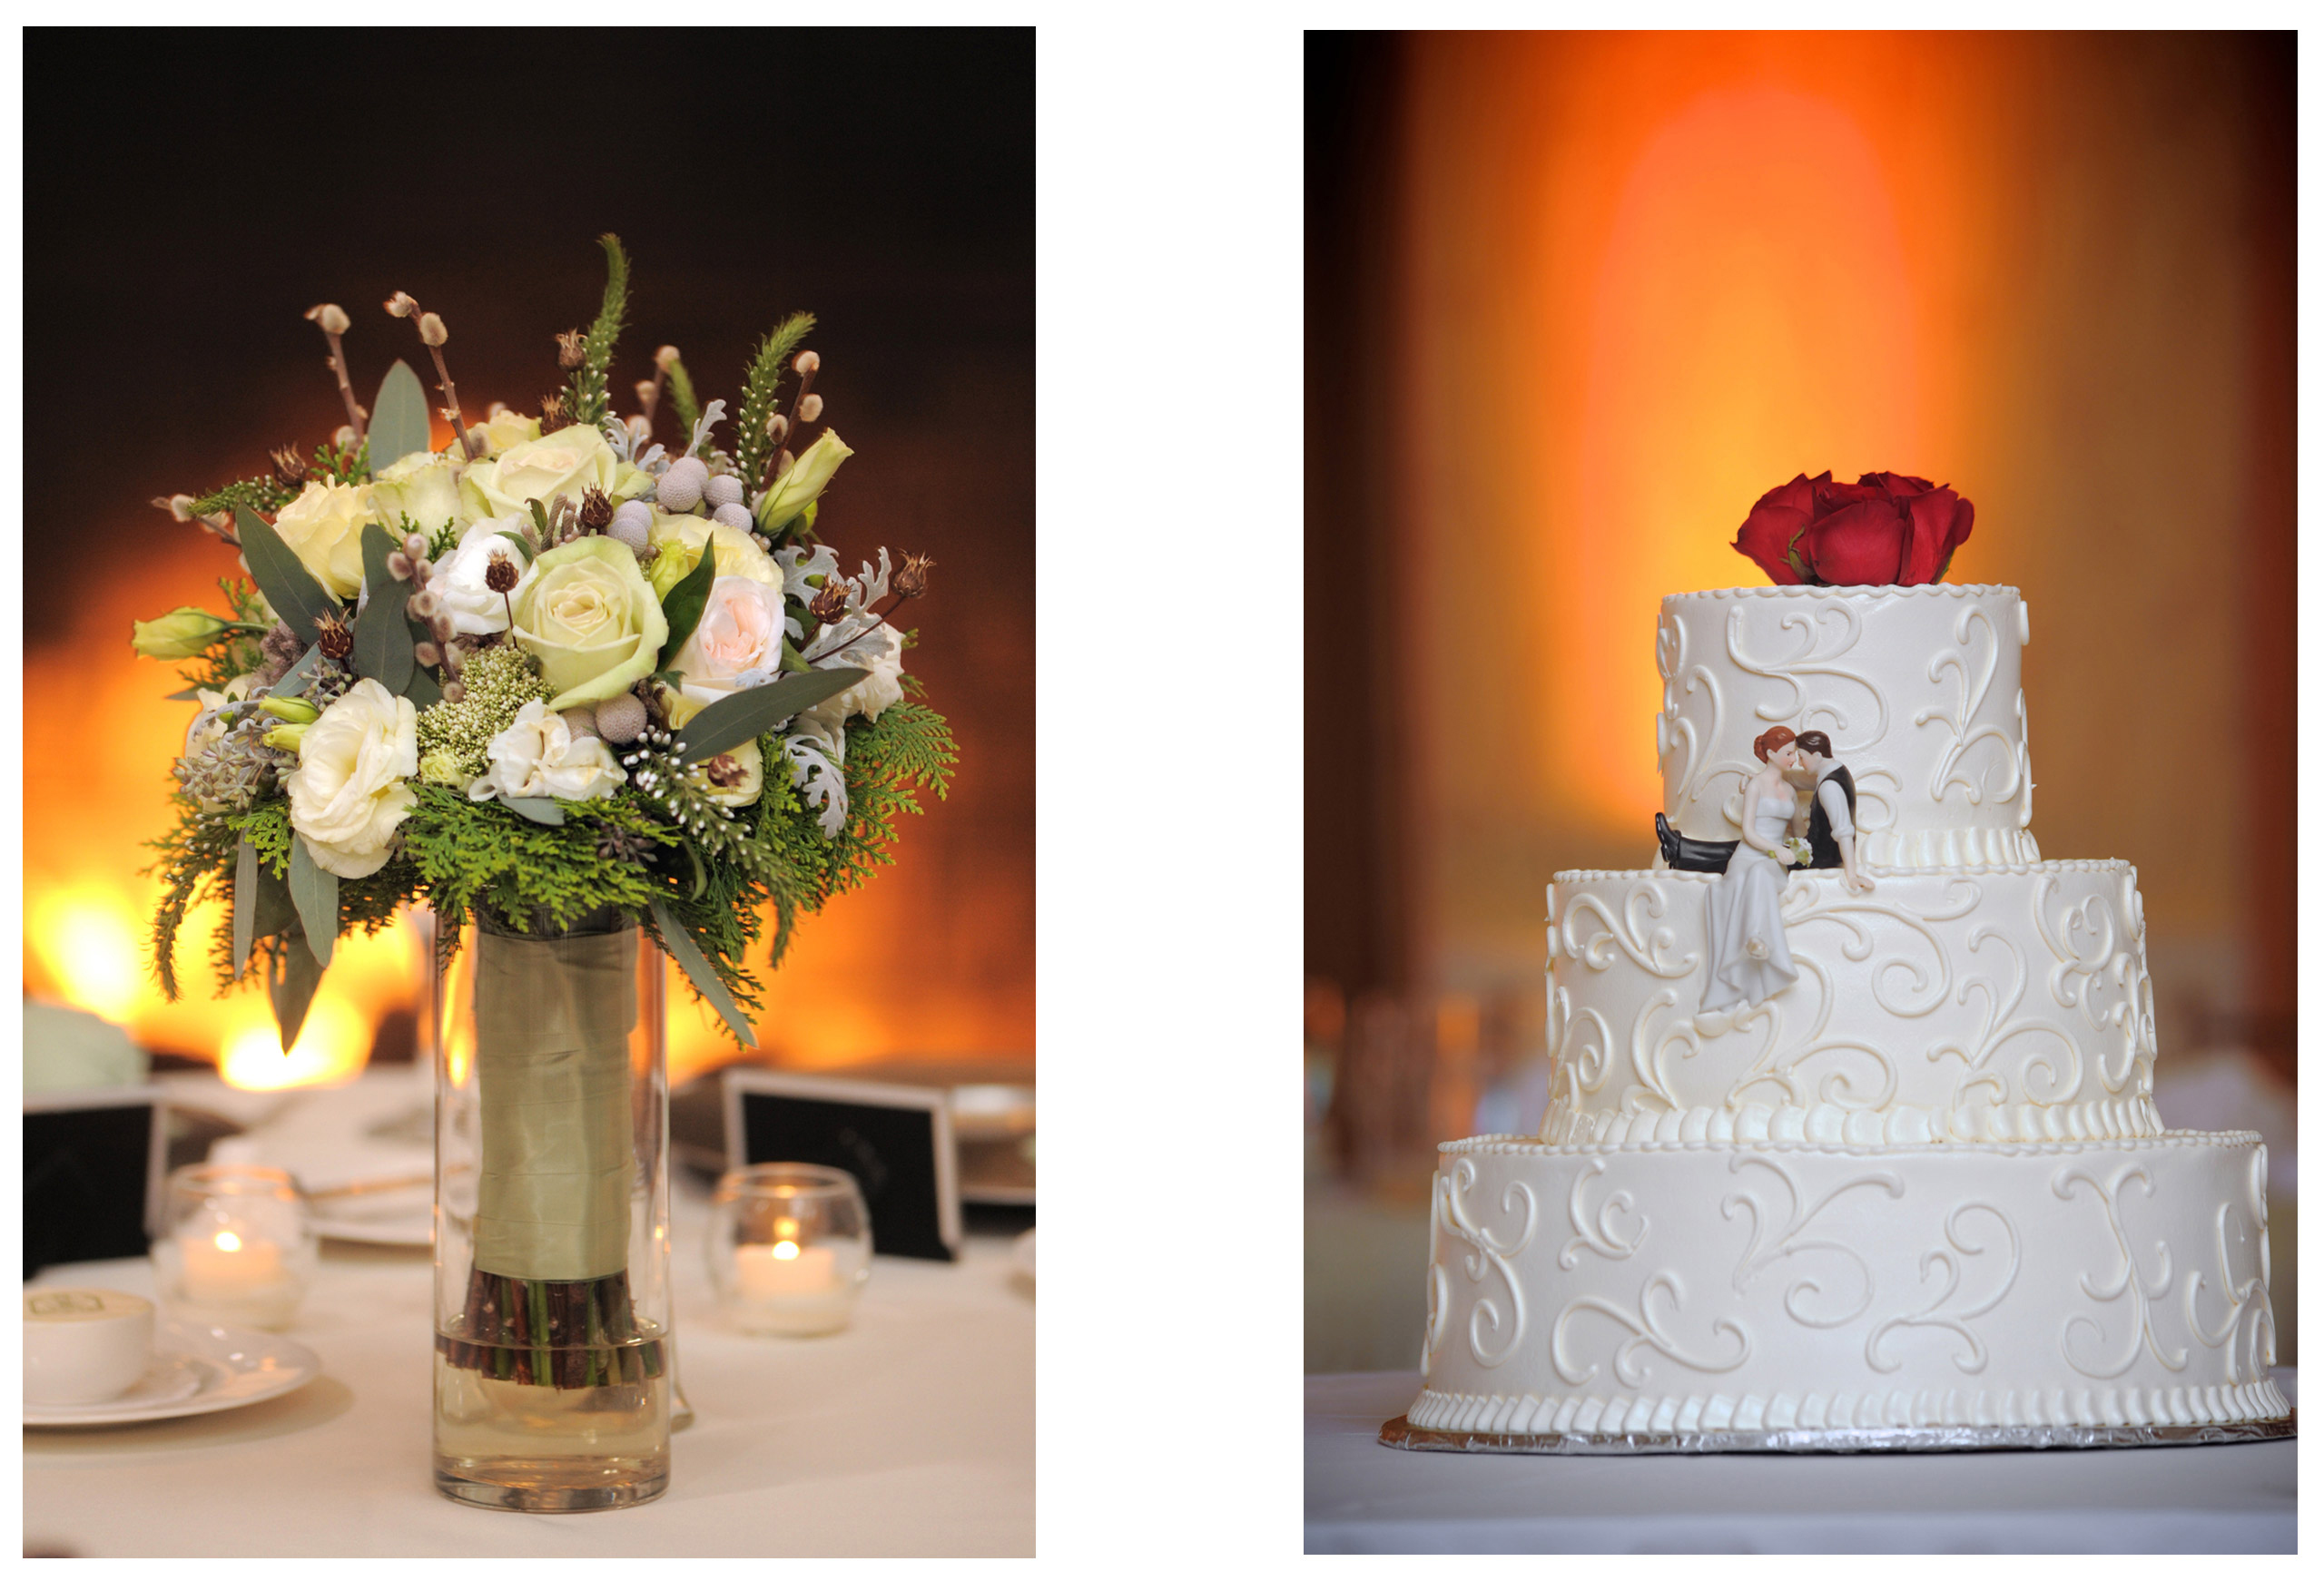 michigan wedding photographer takes detail photos of cakes and flowers at weddings.